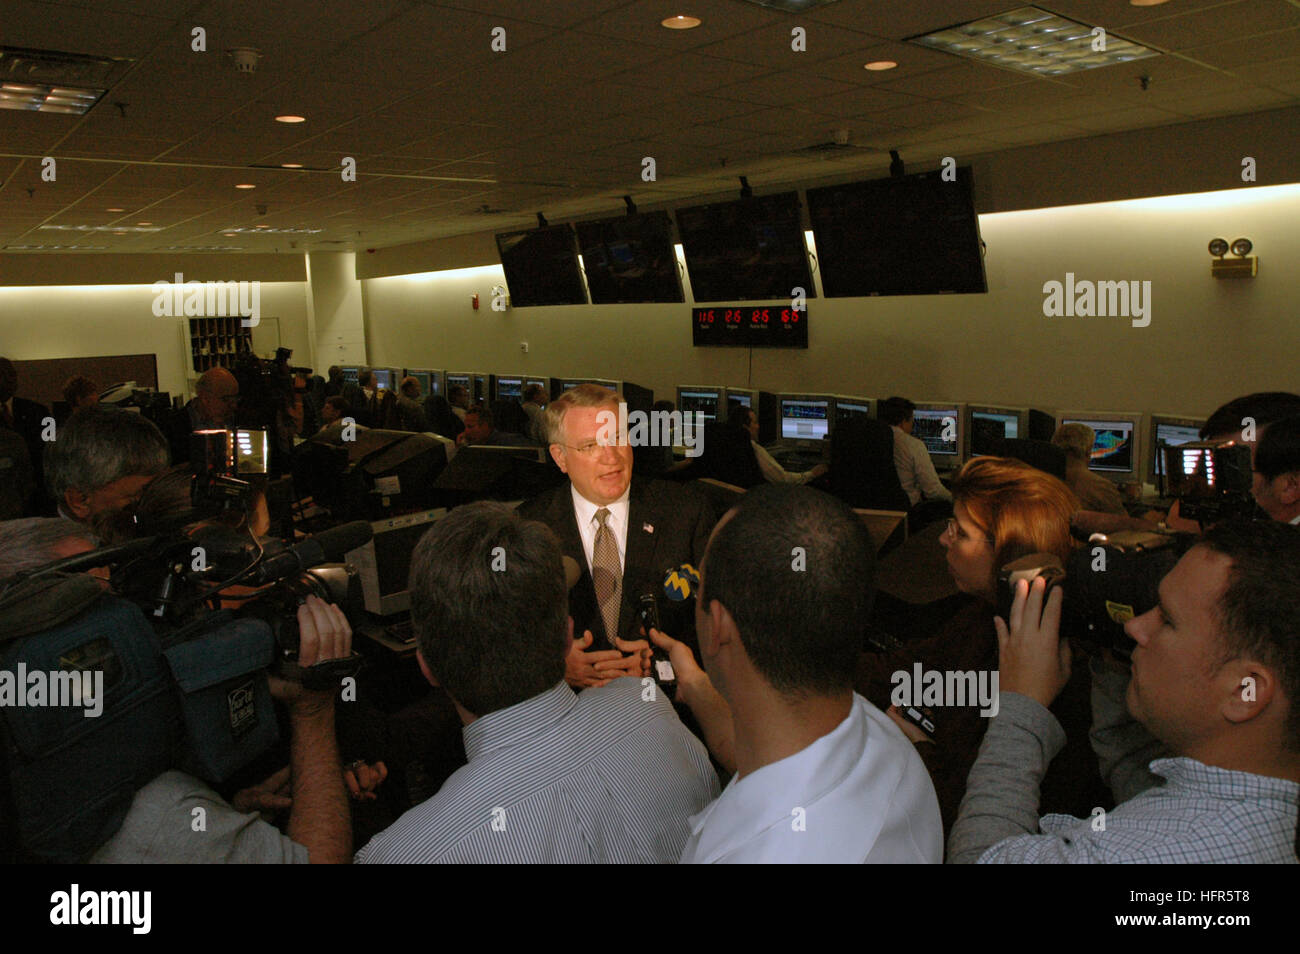 Policy P Stock Photos Amp Policy P Stock Images Alamy